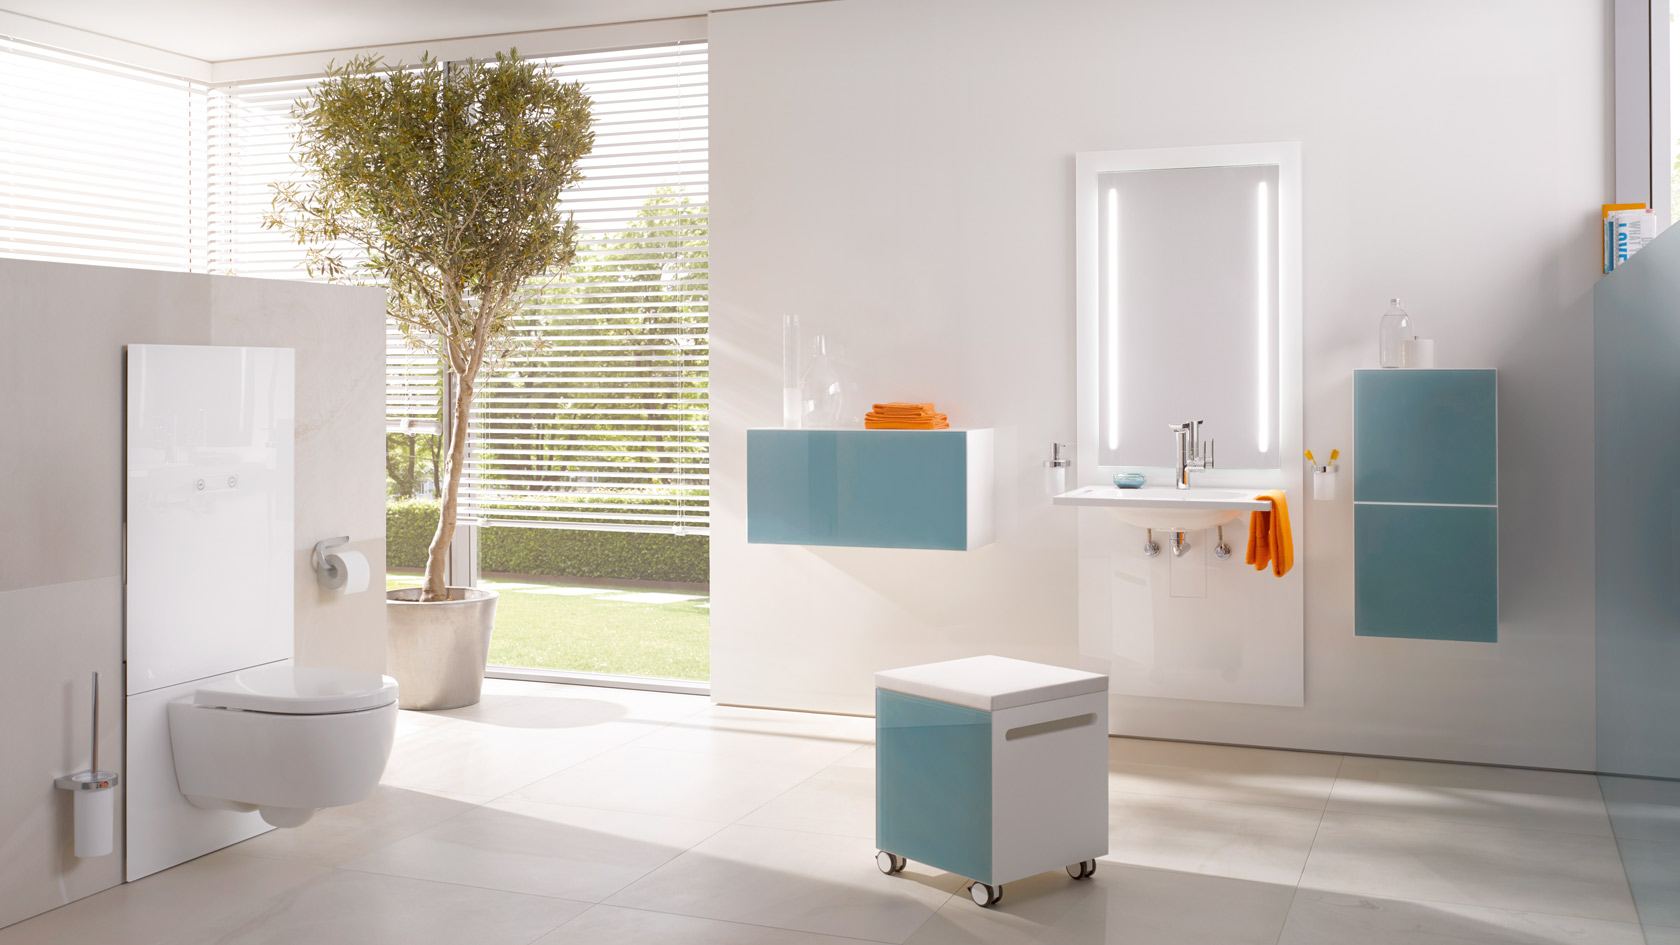 Furniture M40 includes design bathroom furniture with washbasins, high-gloss cabinets and base cabinets. M40 is also suitable for the accessible bathroom.